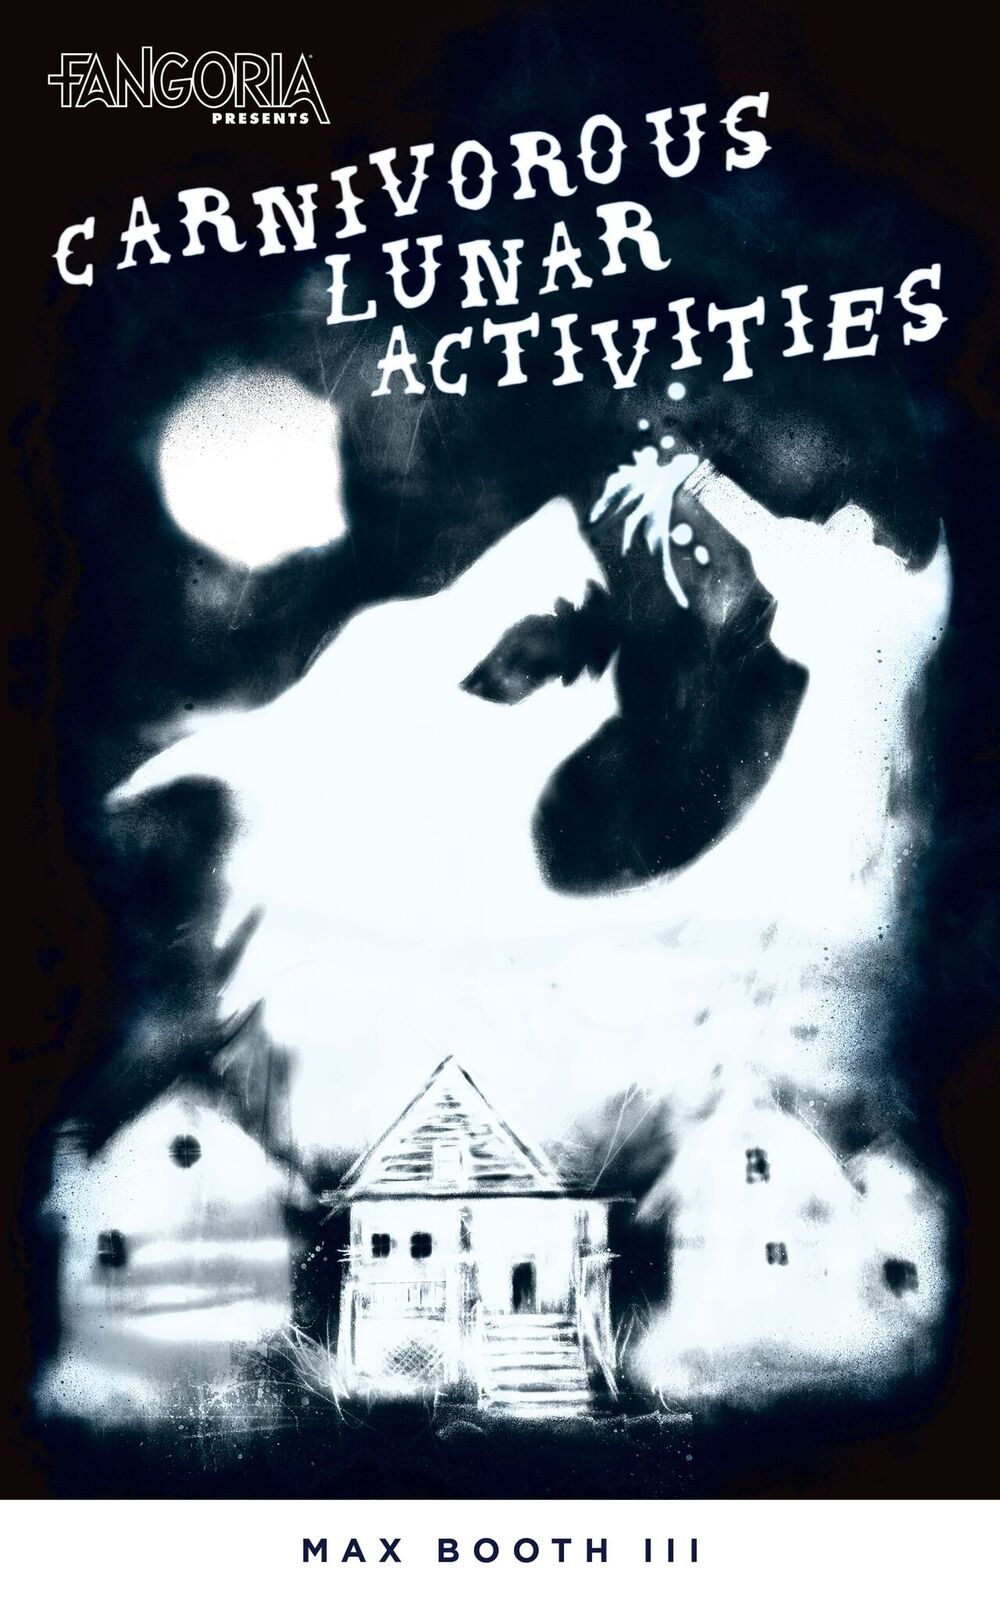 Carnivorous Cover - Exclusive Cover Art Reveal for Fangoria's 3rd Book: CARNIVOROUS LUNAR ACTIVITIES!